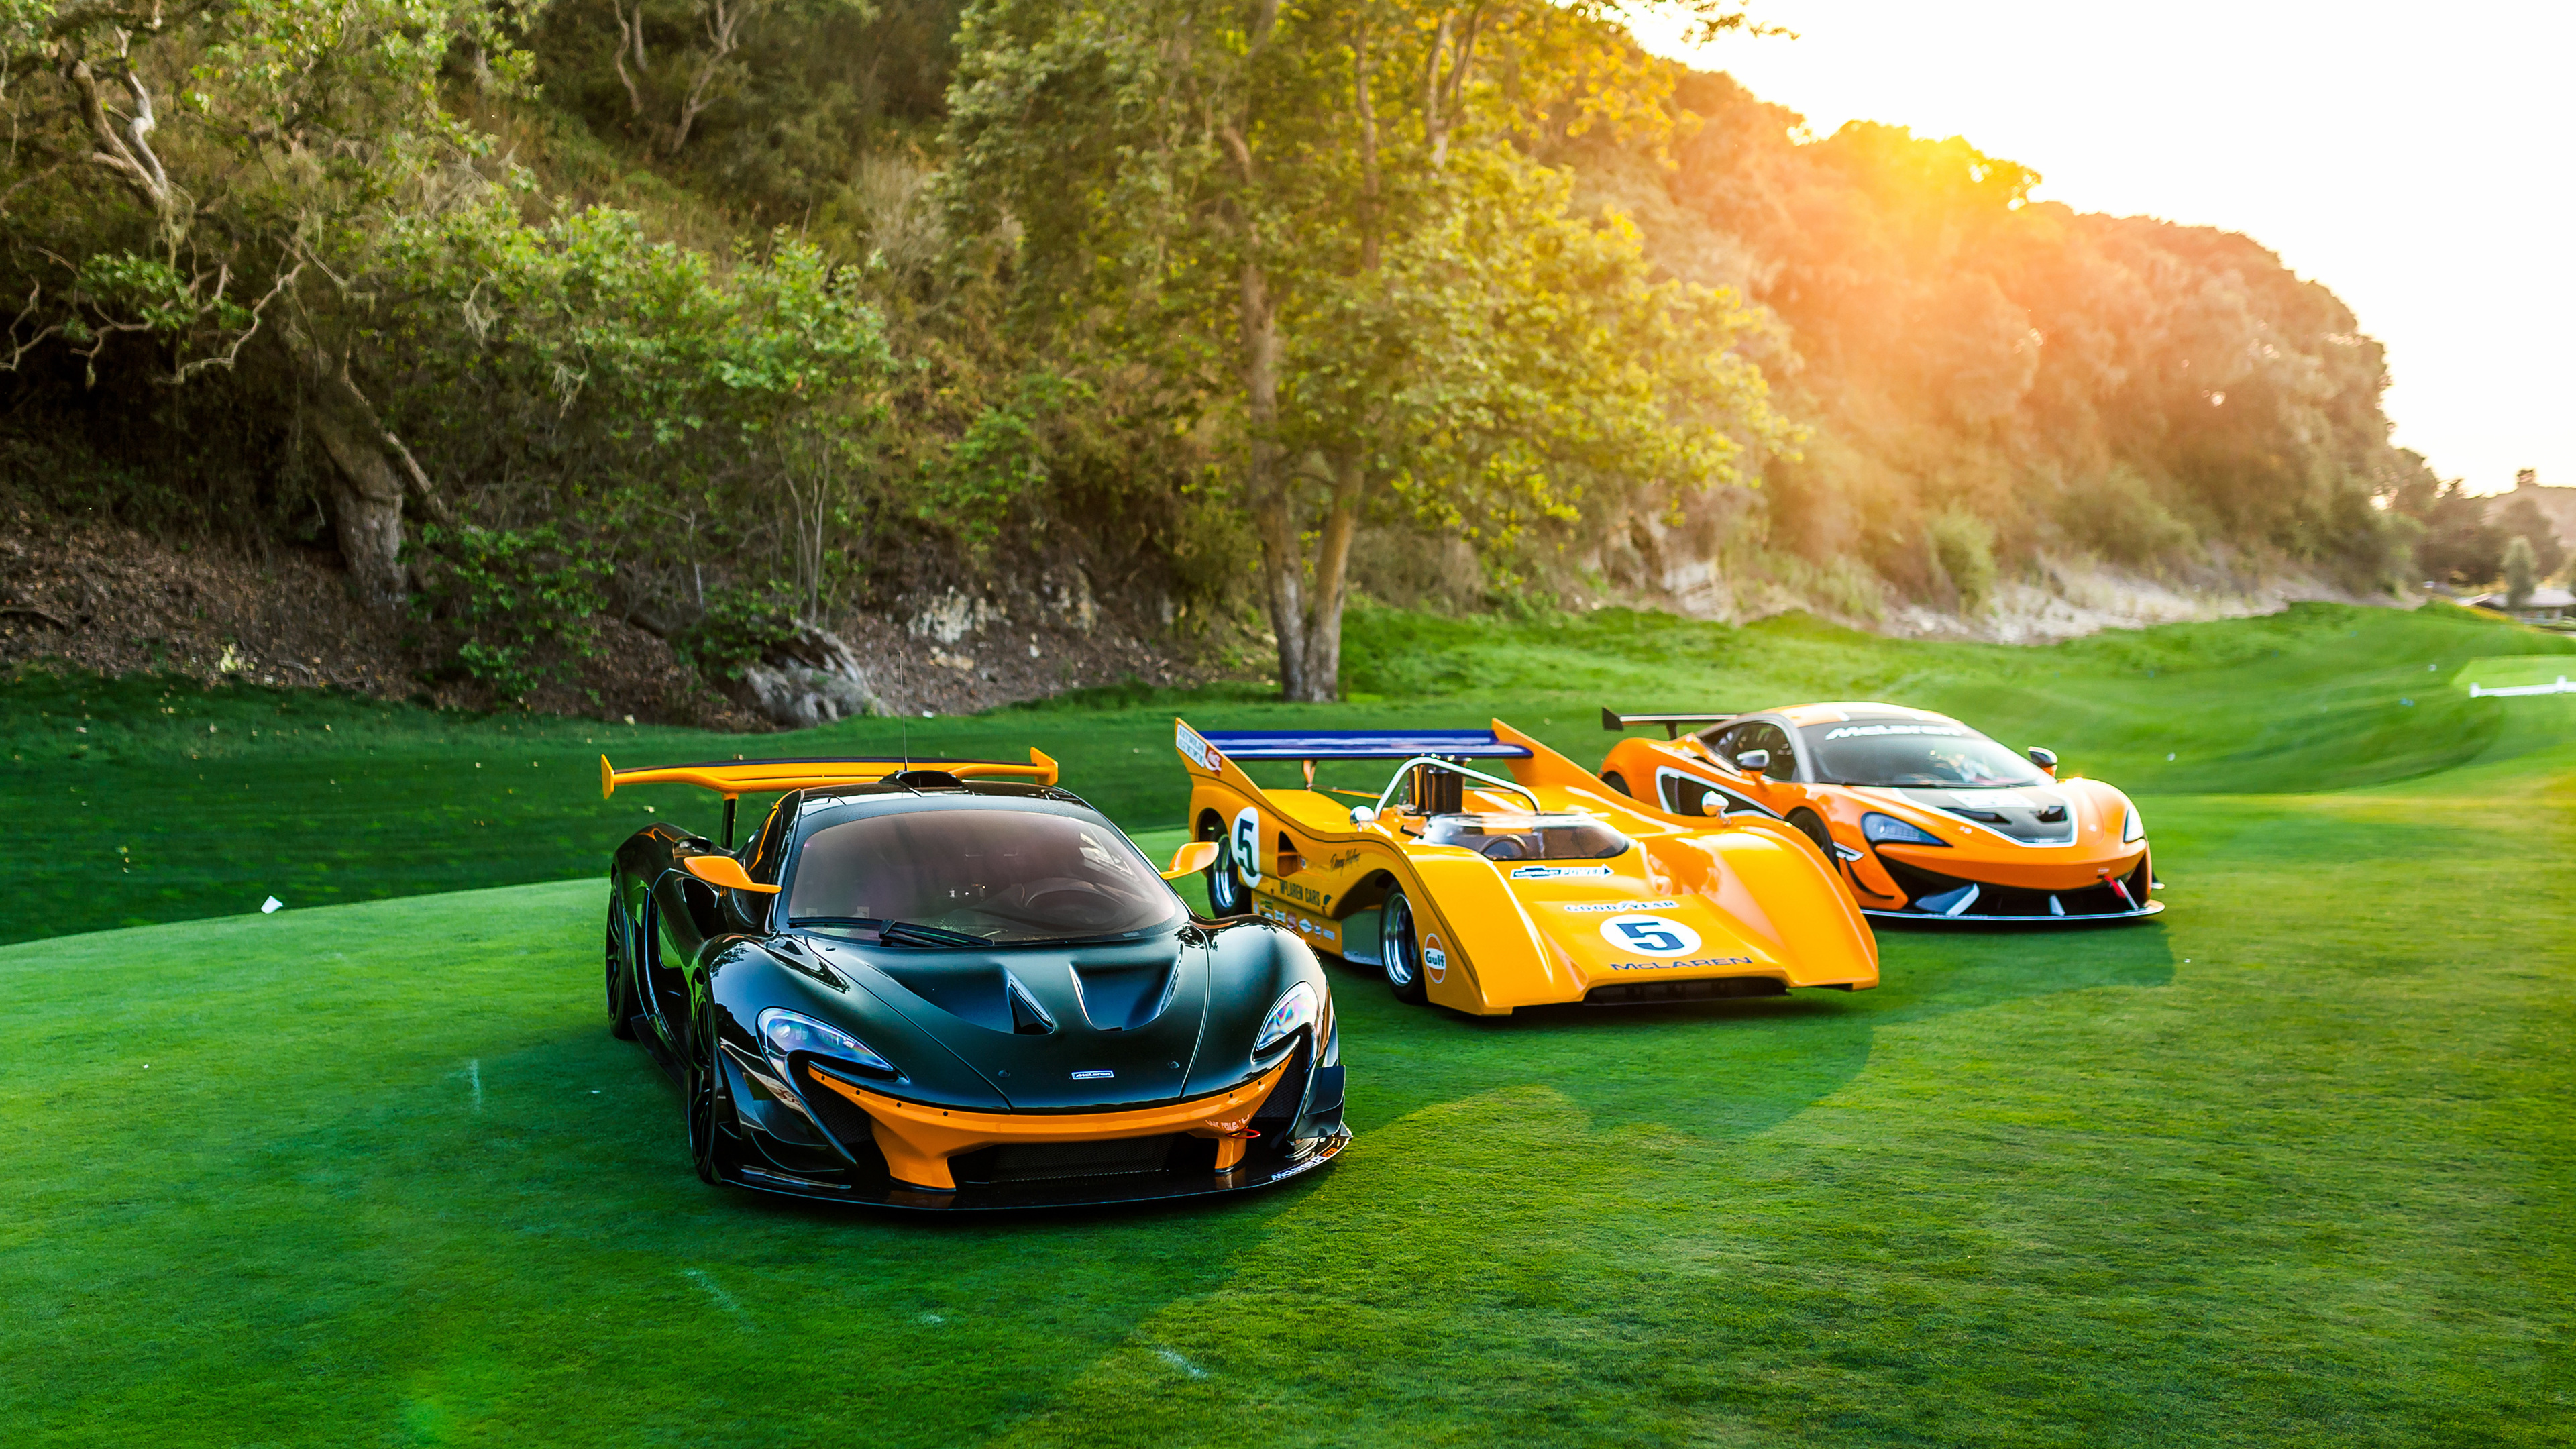 mclarens 4k 1539108060 - Mclarens 4k - mclaren wallpapers, hd-wallpapers, cars wallpapers, 4k-wallpapers